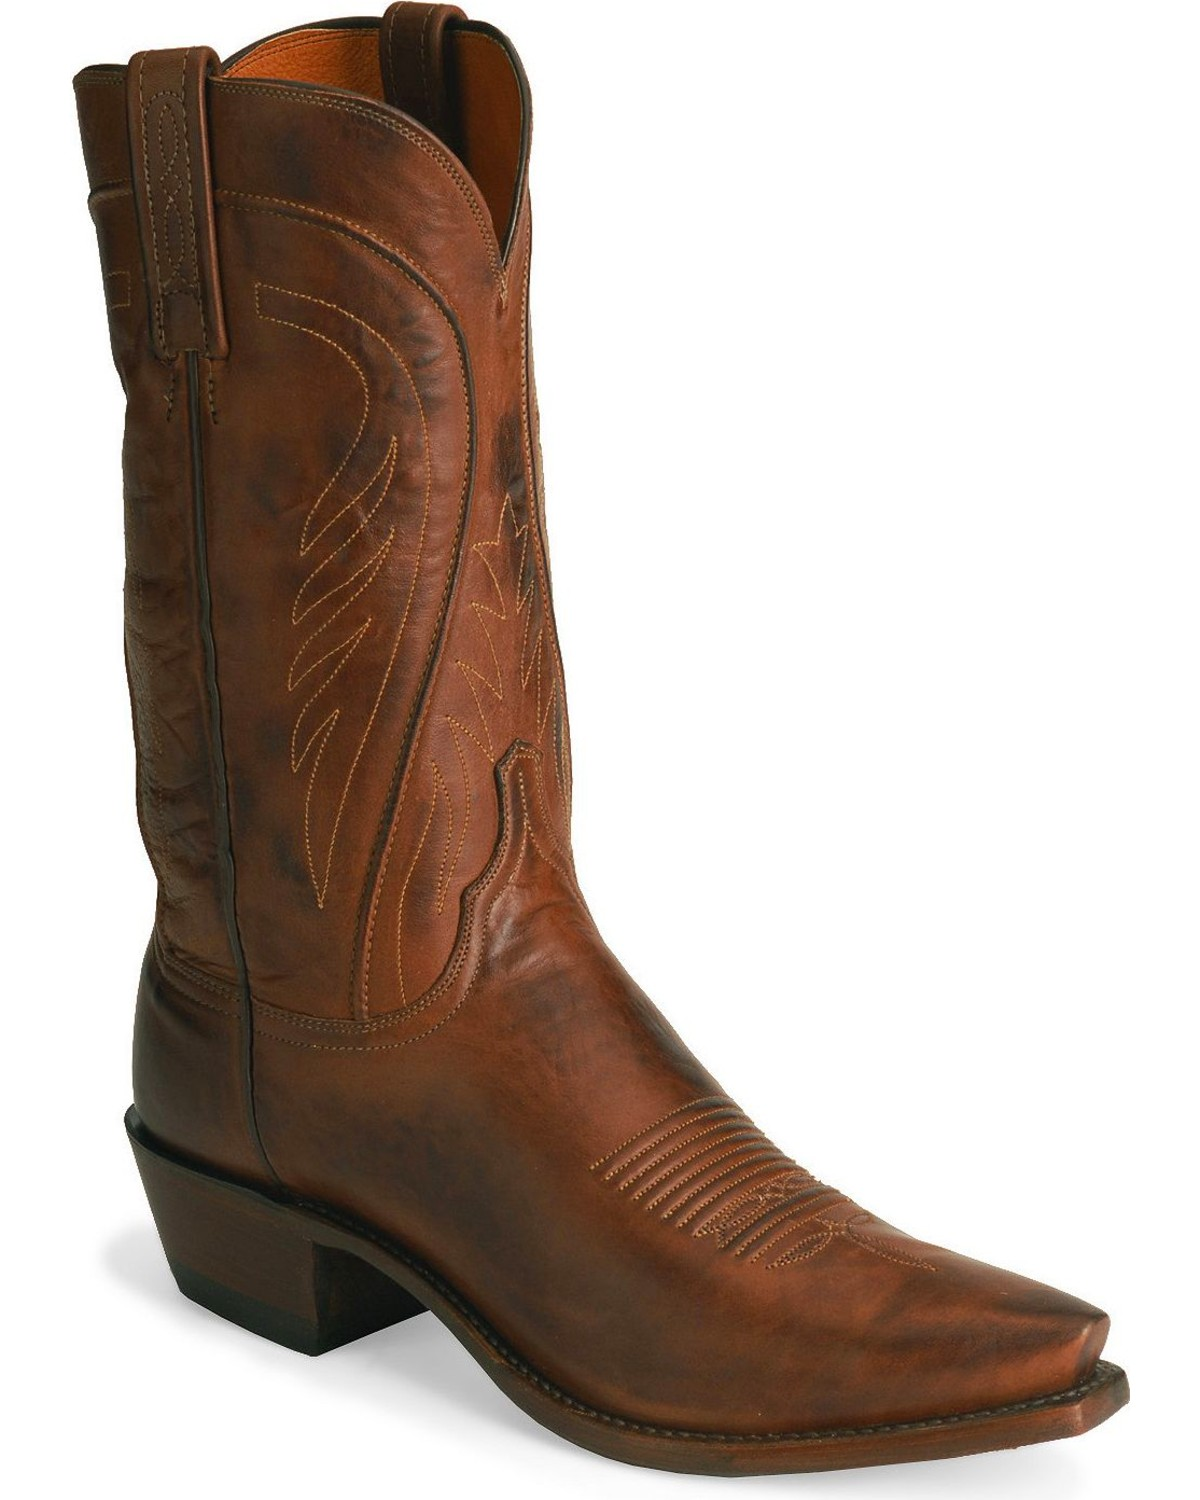 cac1ca8adce Lucchese Men's 1883 Pull-On 13